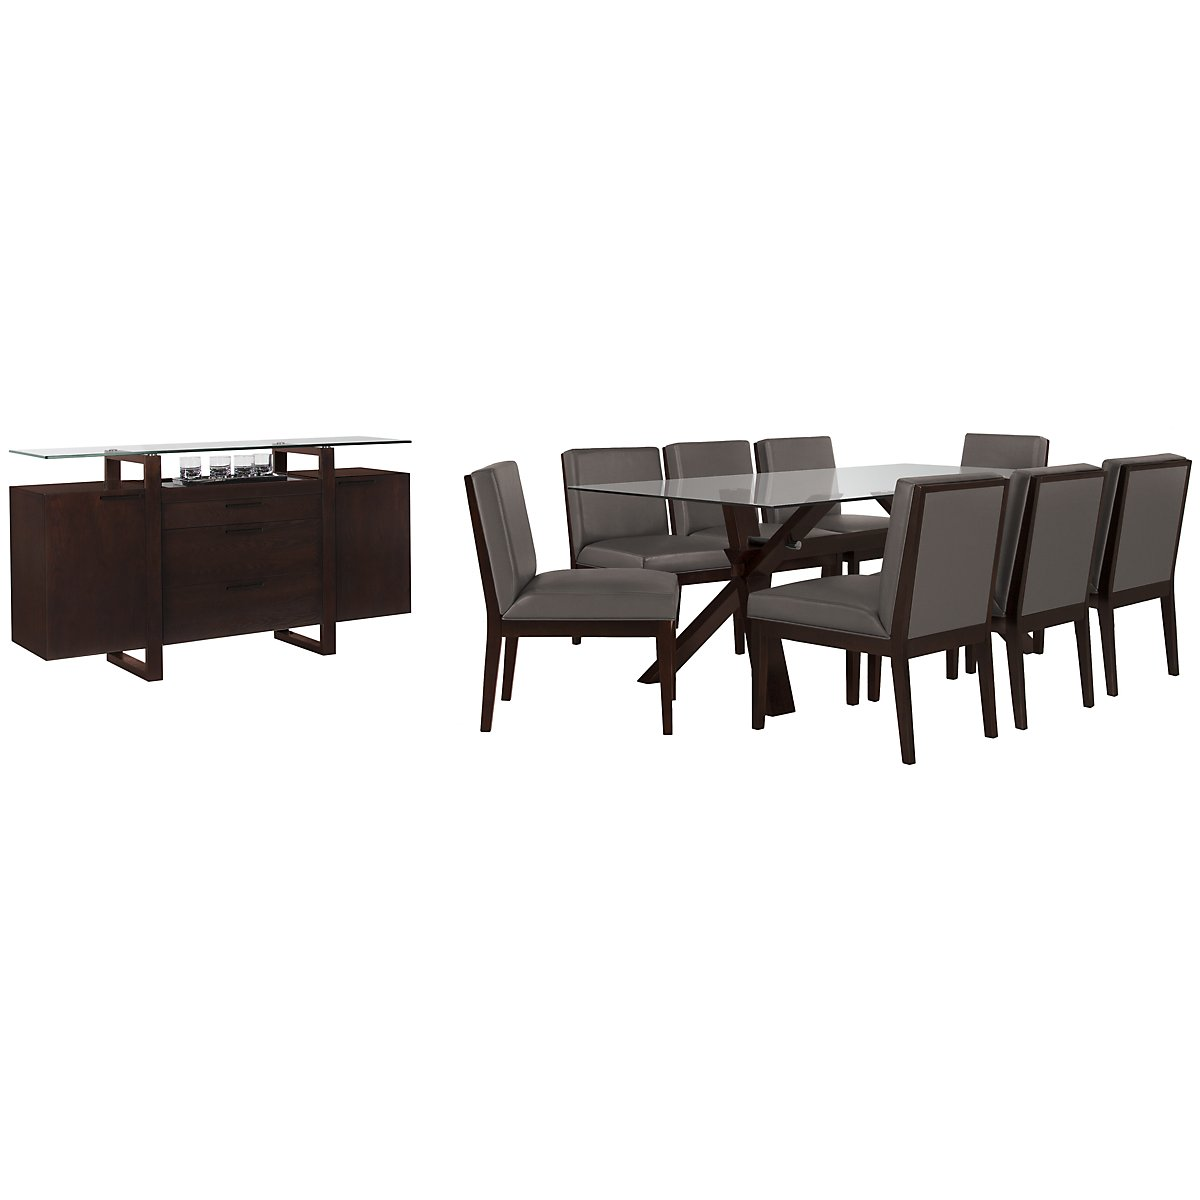 "Emma Dark Gray 83"" Dining Room"